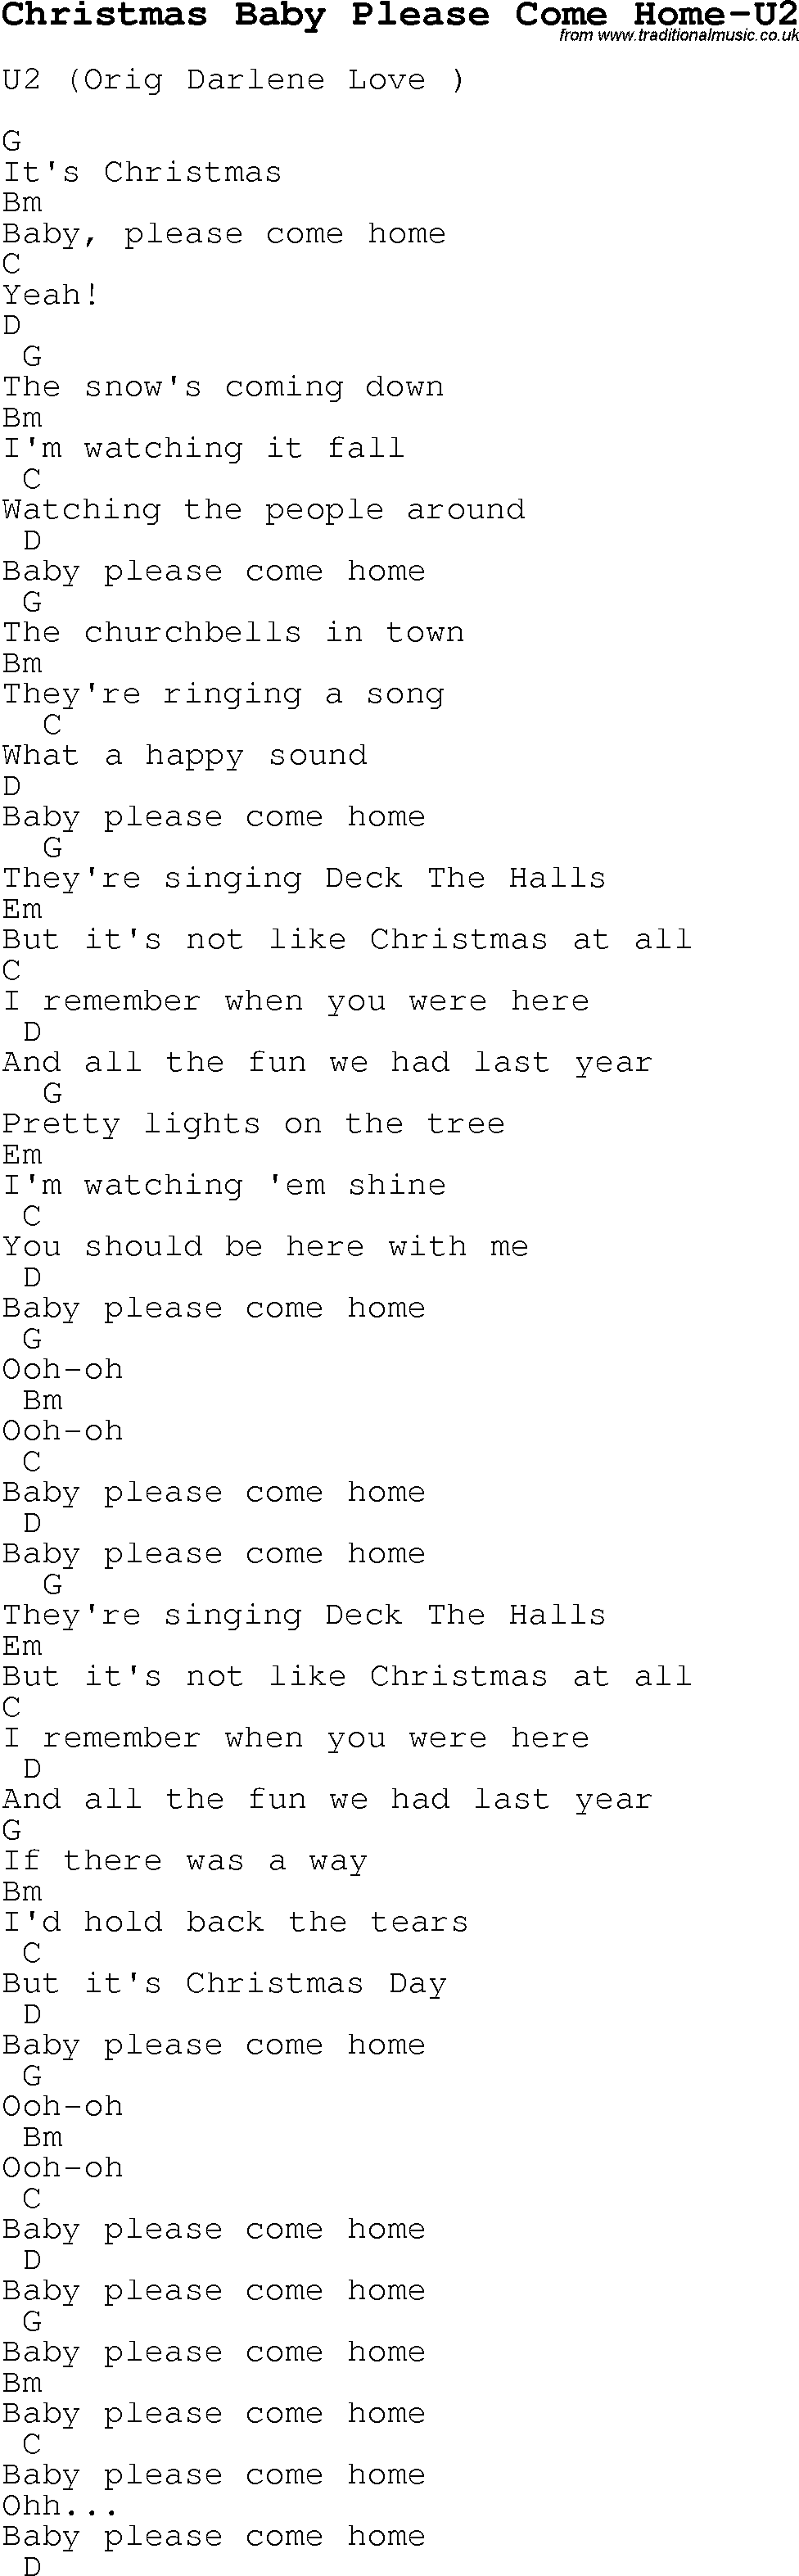 Christmas Carol Song Lyrics With Chords For Christmas Baby Please